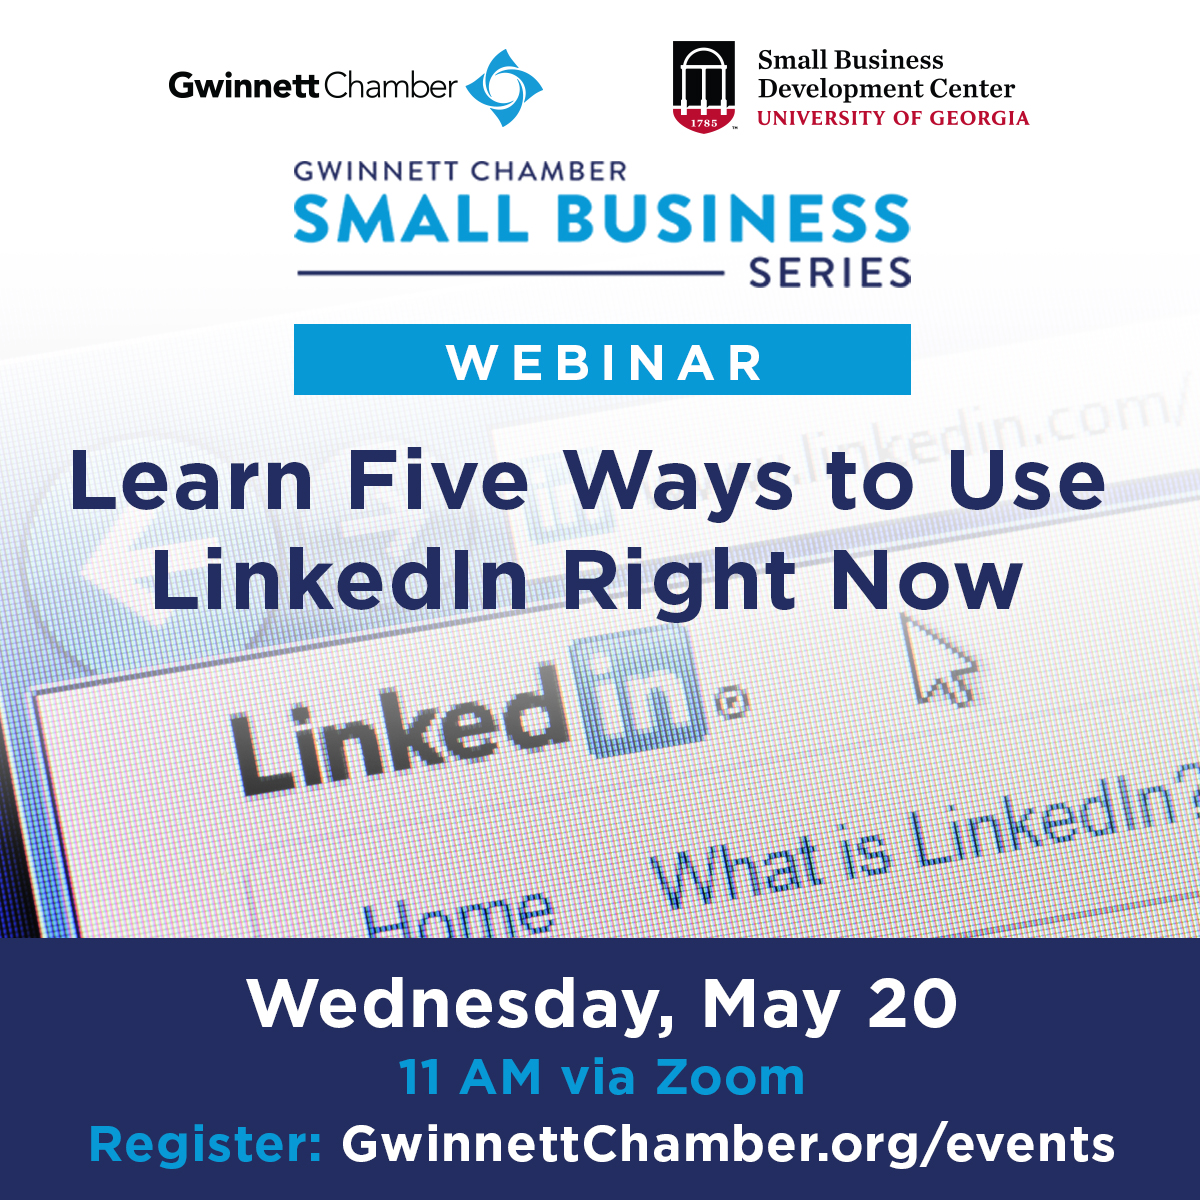 Five high-impact areas will be covered at this insightful event. #GwinnettSmallBiz Register: bit.ly/3bwSPrT